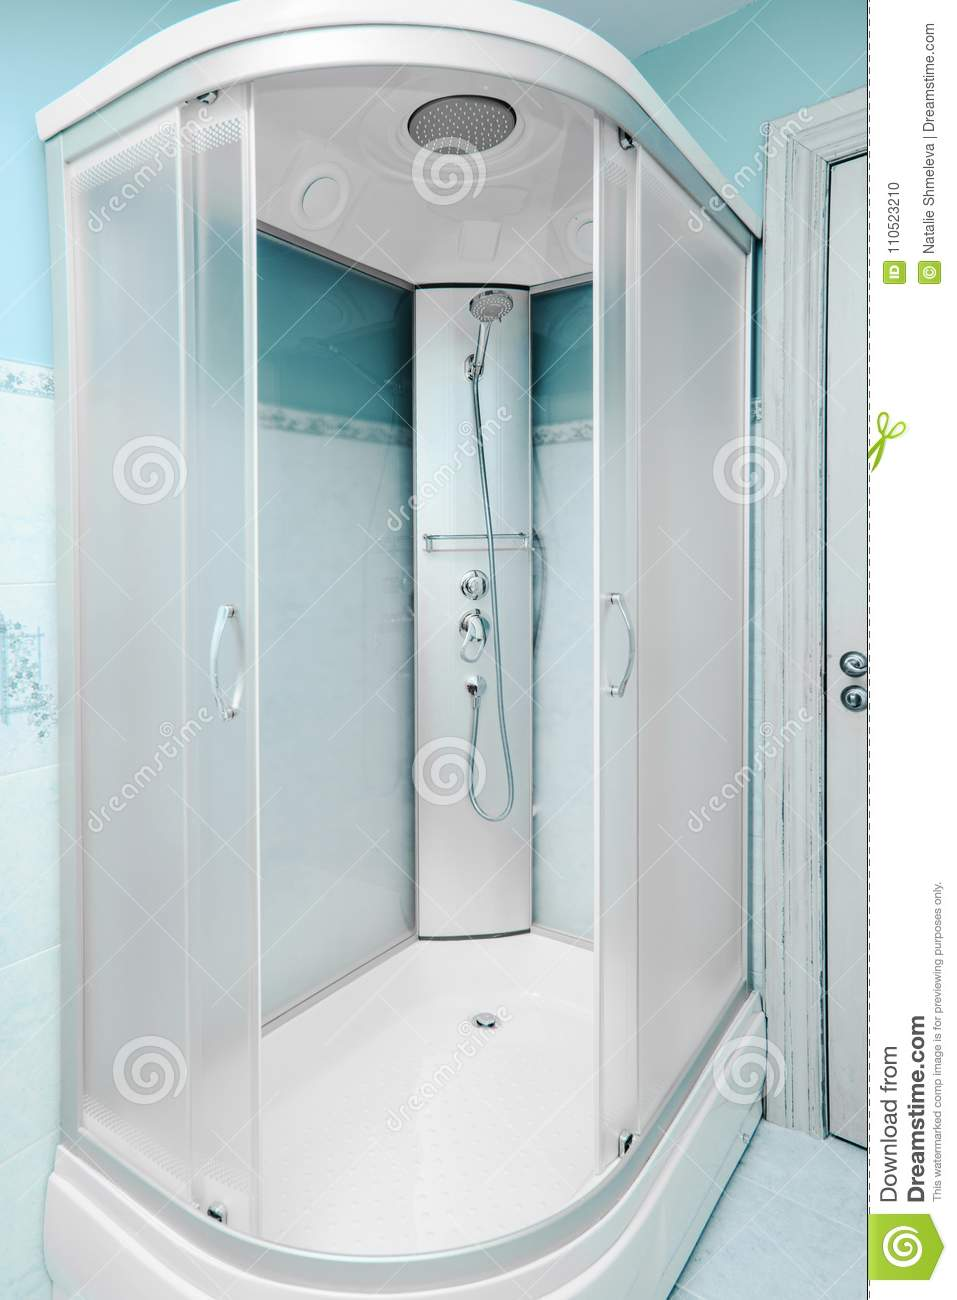 Empty shower cabin stock photo. Image of shower, clean - 110523210